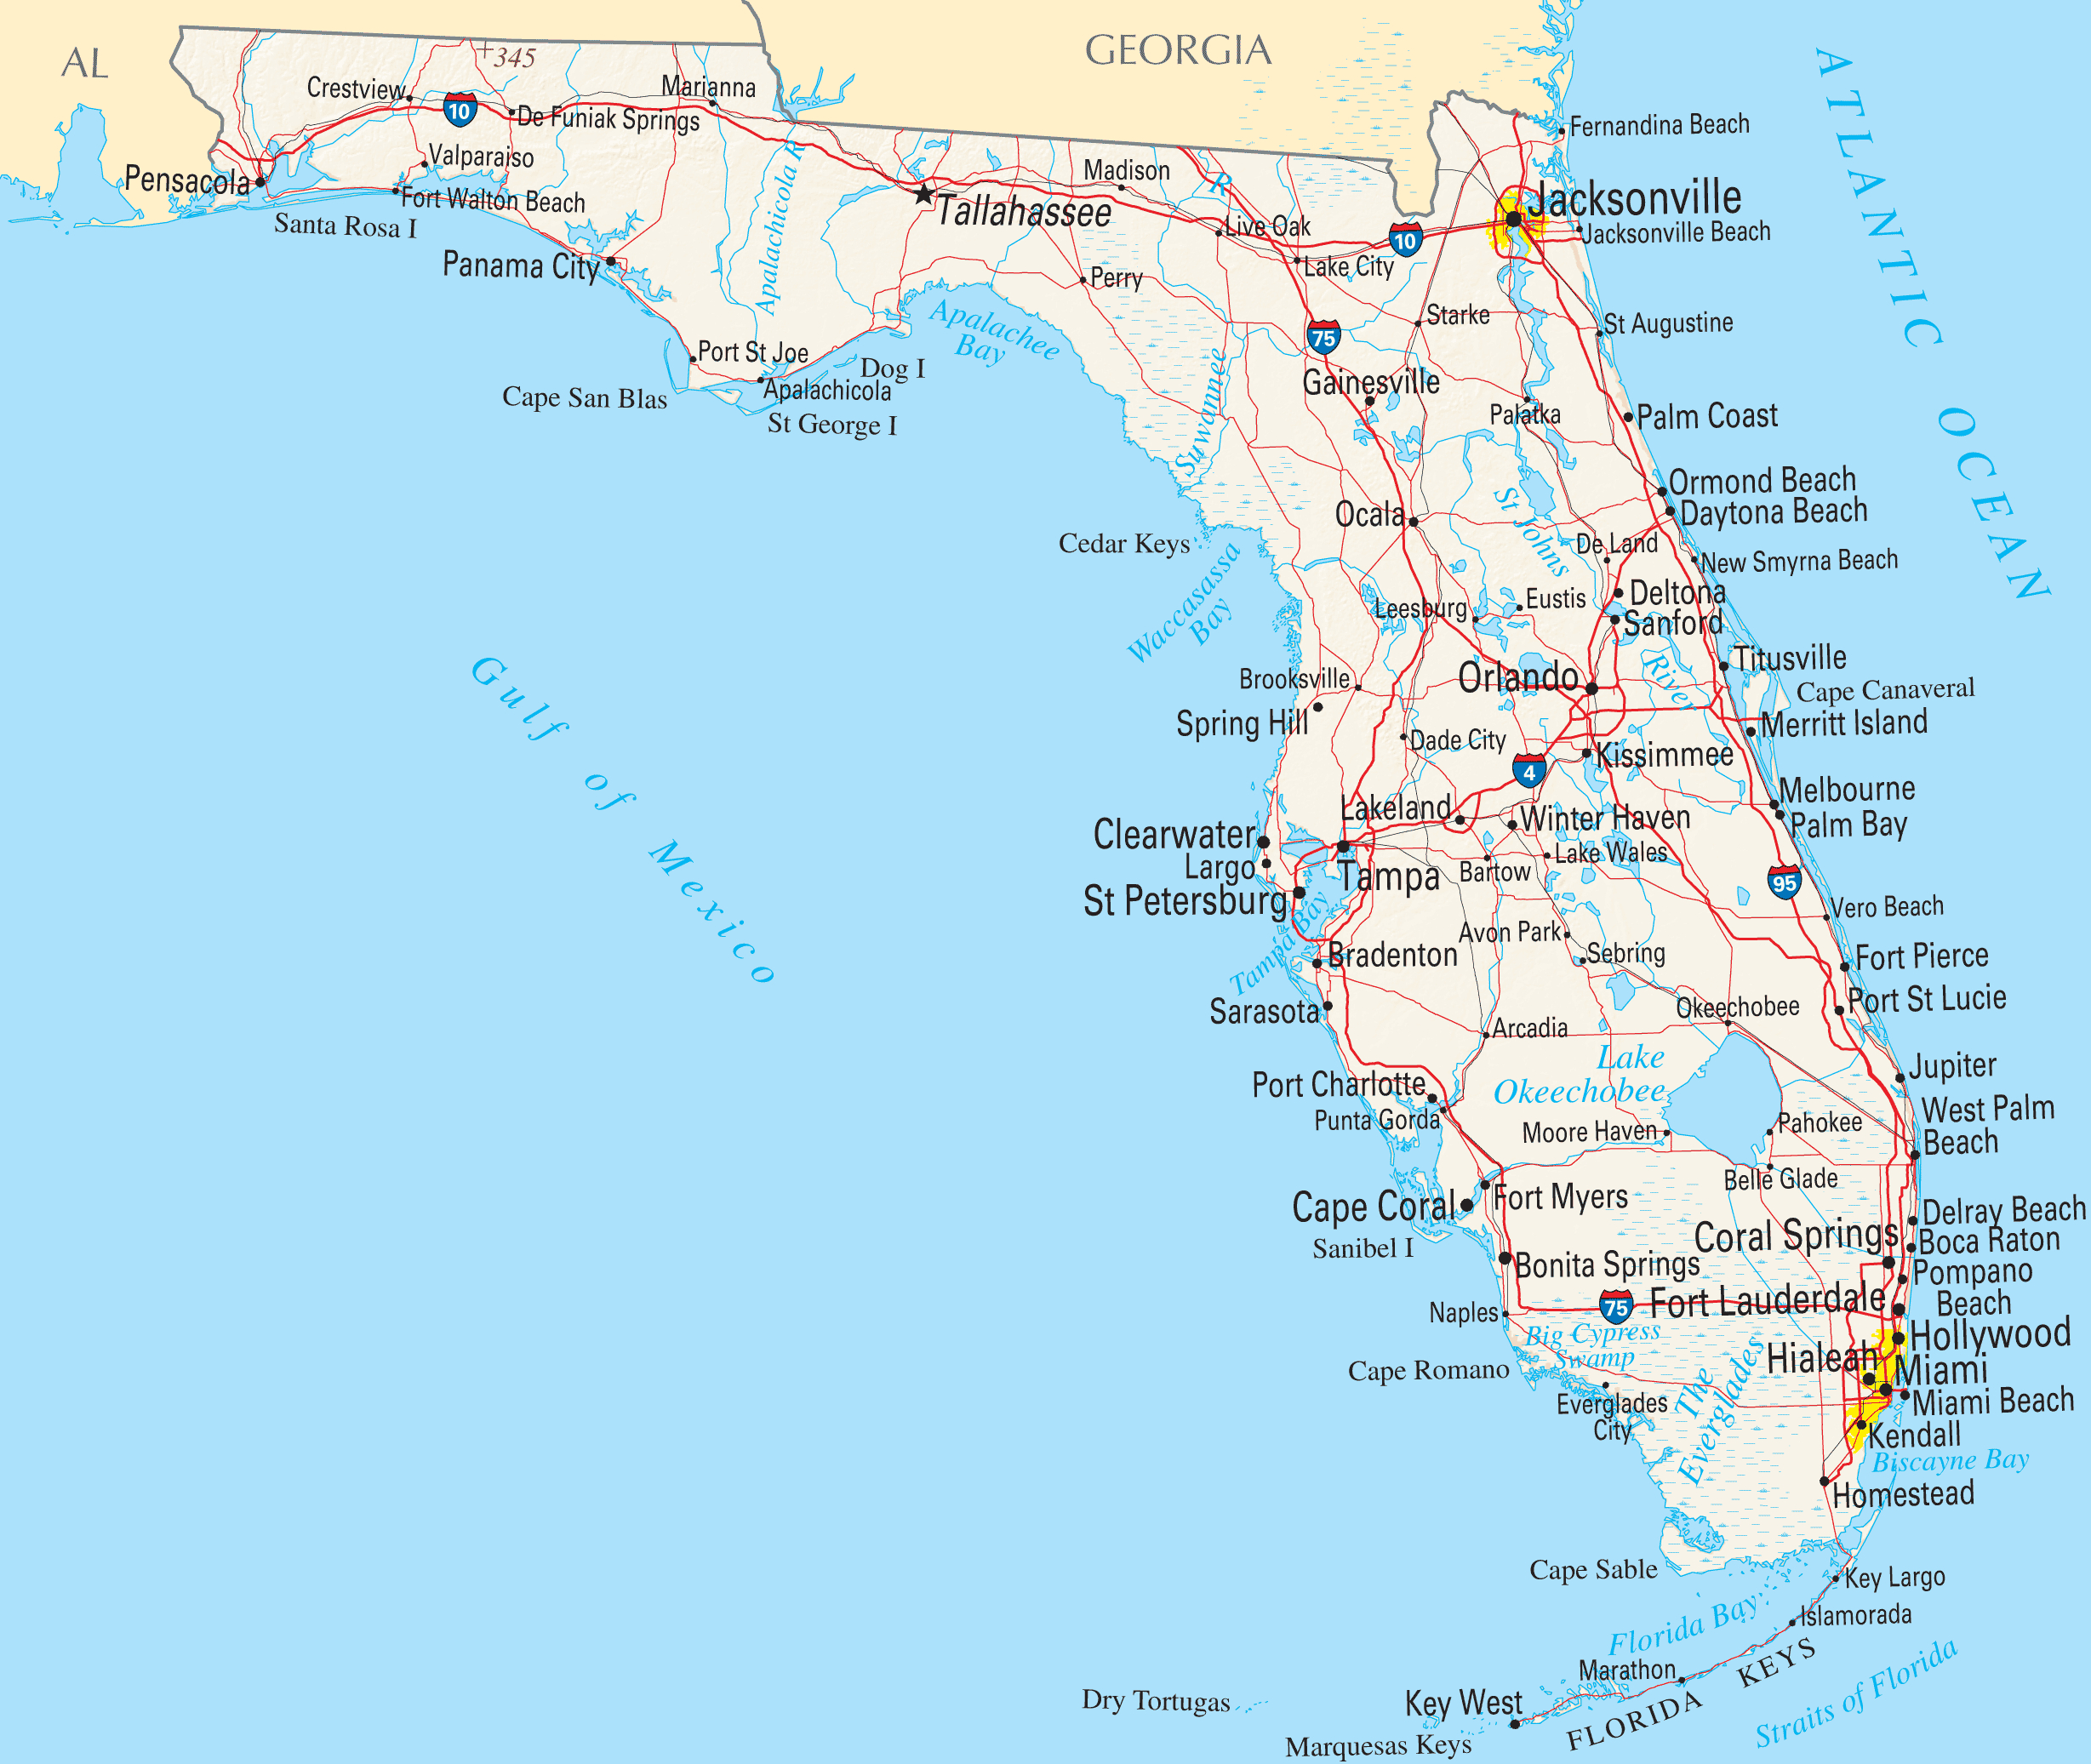 Florida Reference Map • Mapsof - Where Is Apalachicola Florida On The Map